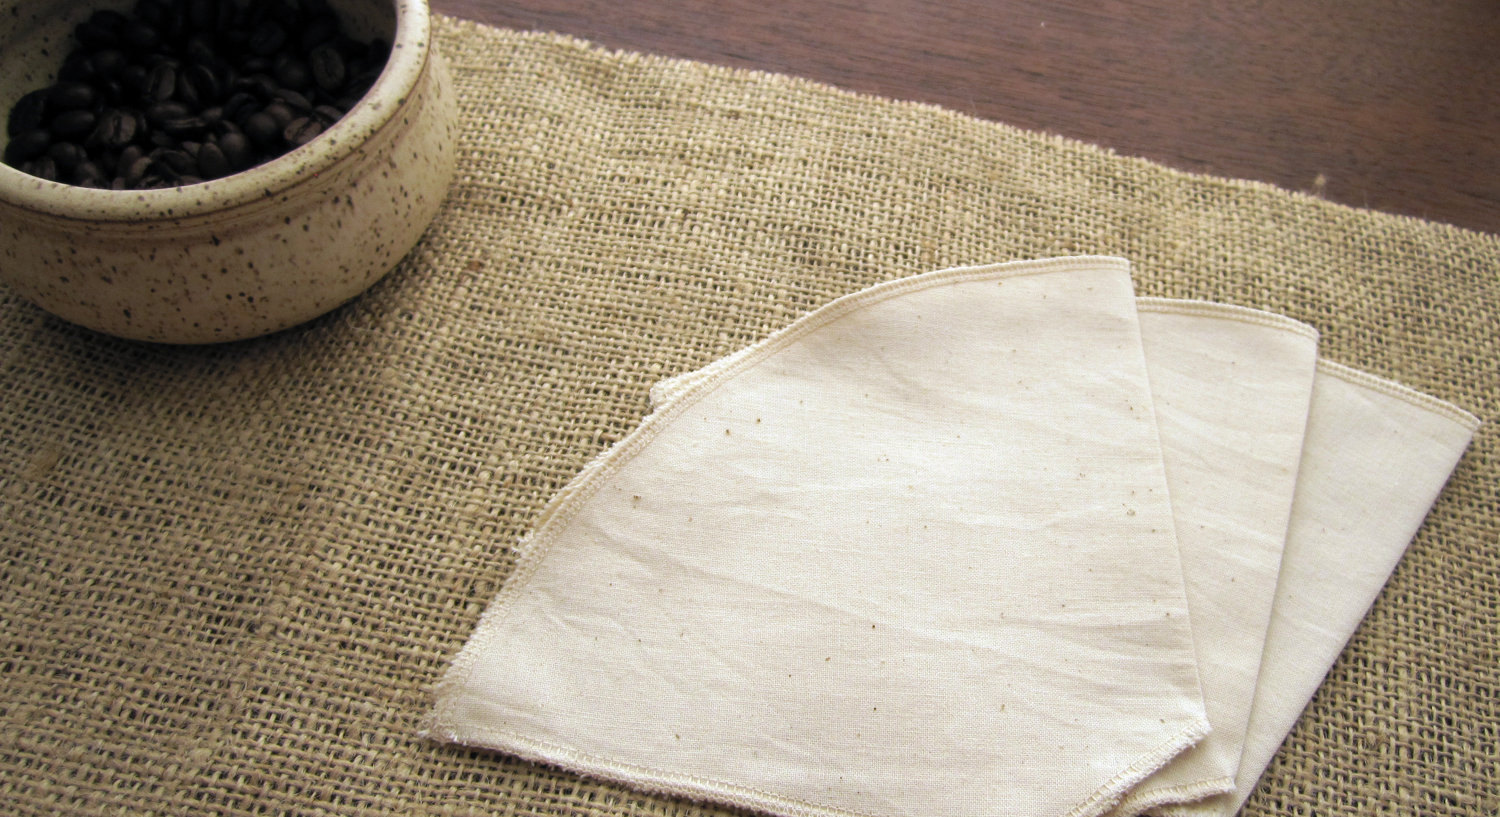 Reusable Coffee Filter £7.37 + Postage for 2